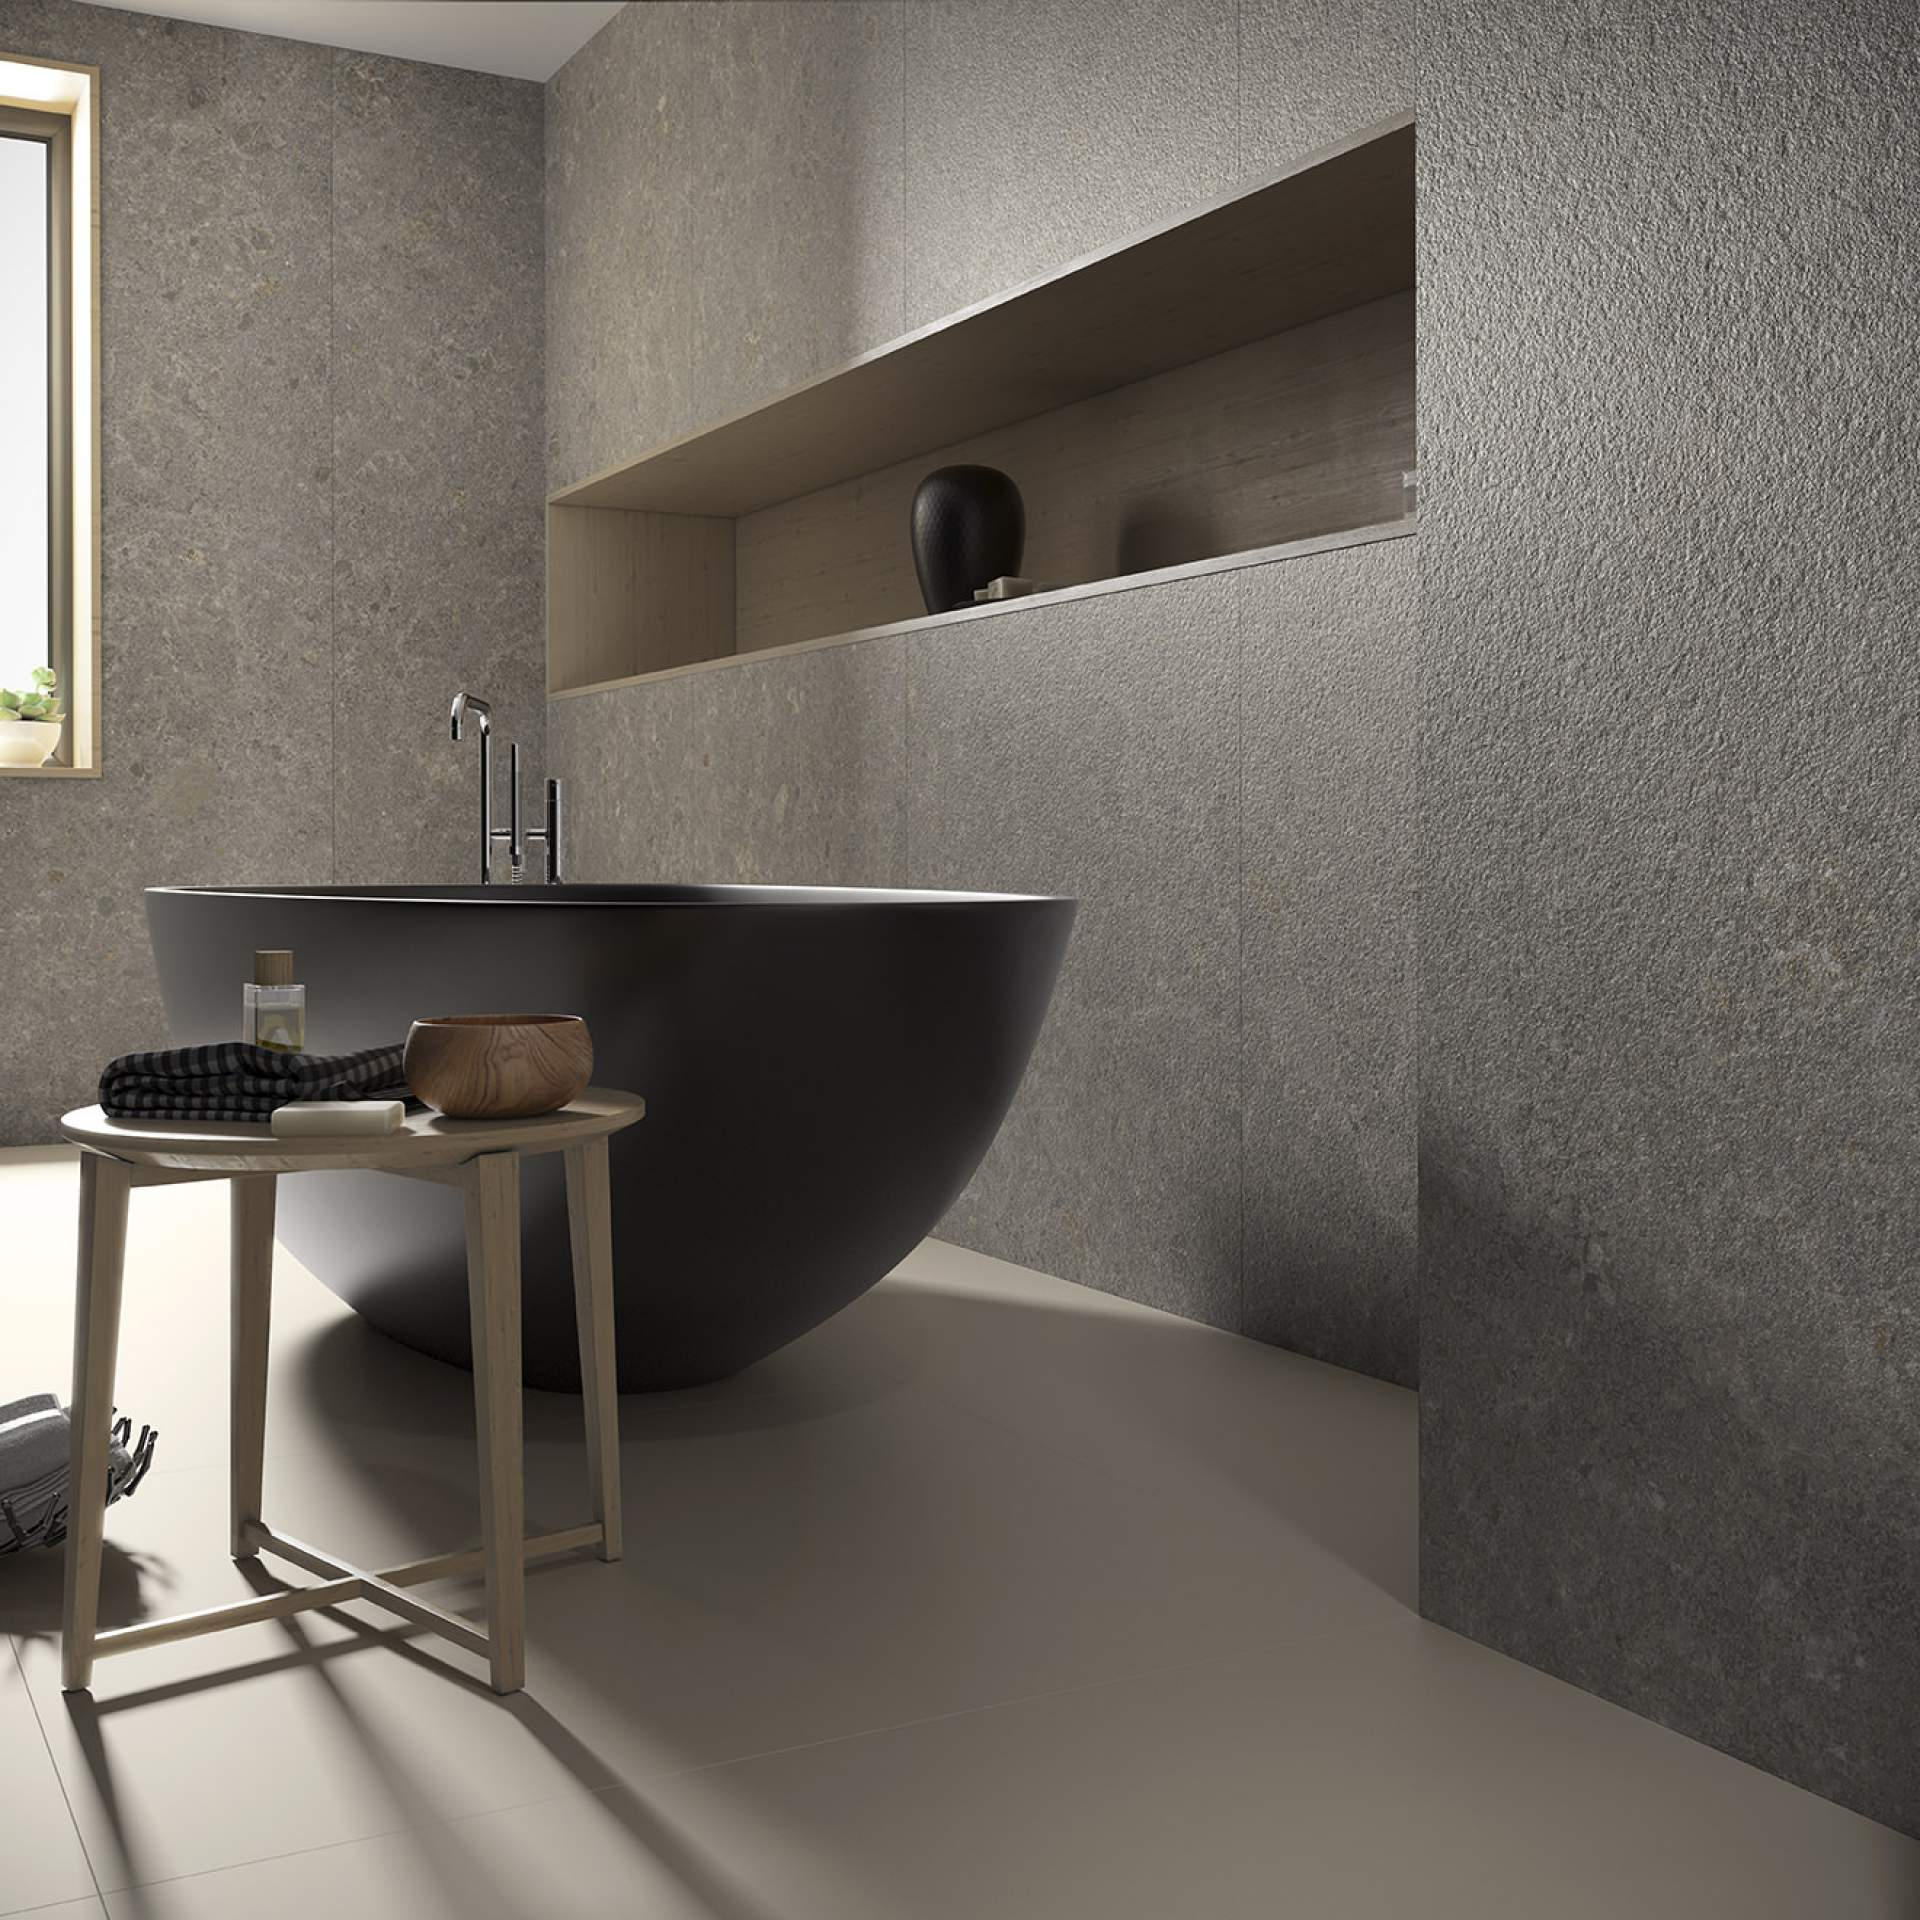 Impact Bathroom Wall setting with Grey Tile